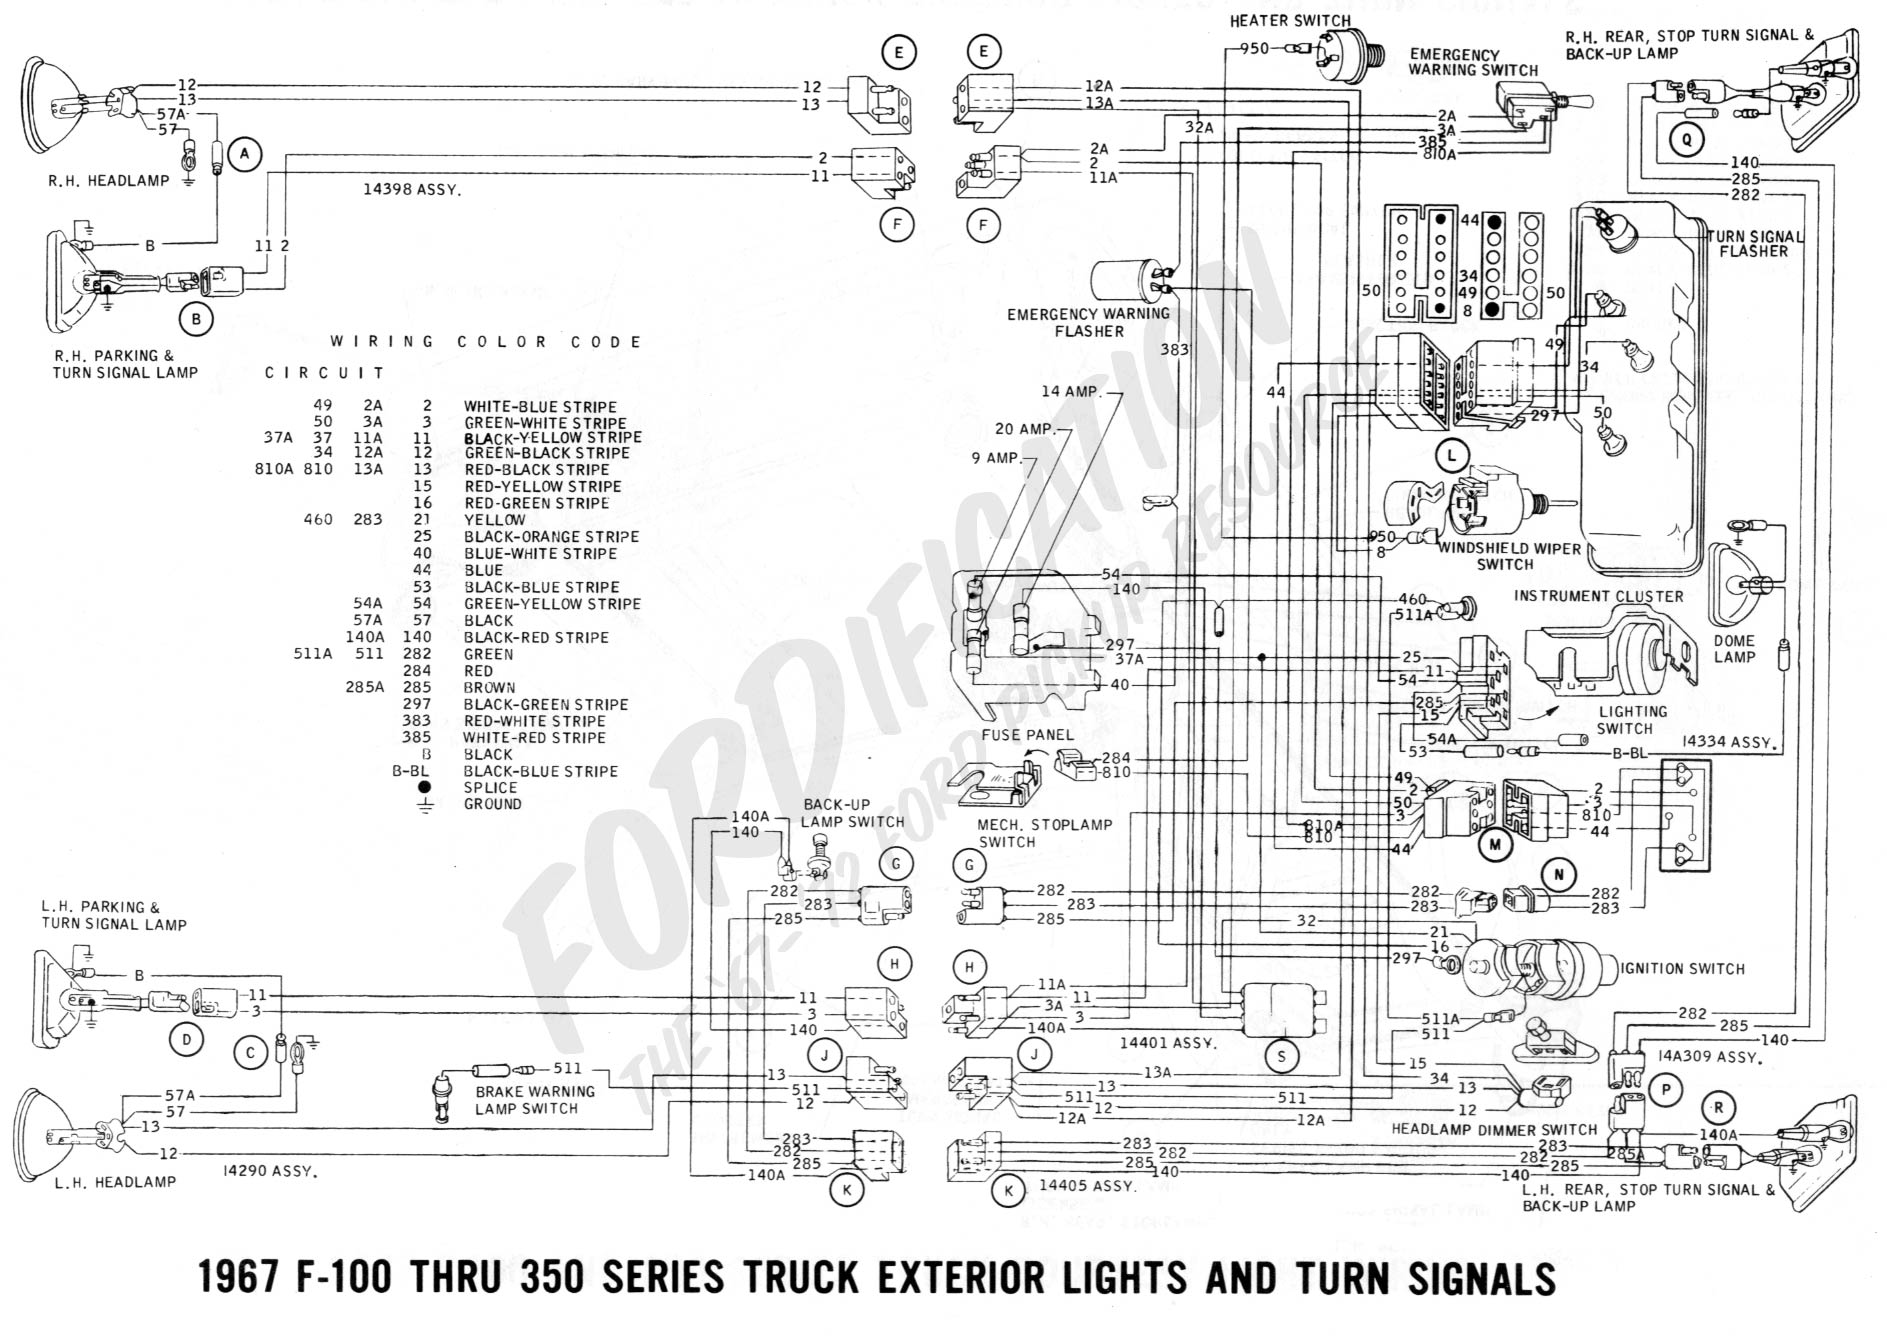 1991 Ford F 150 Turn Signal Wiring Diagram About Also 1988 Chevy 1500 Further Gm Radio 1980 F150 Schematics Silverado 1967